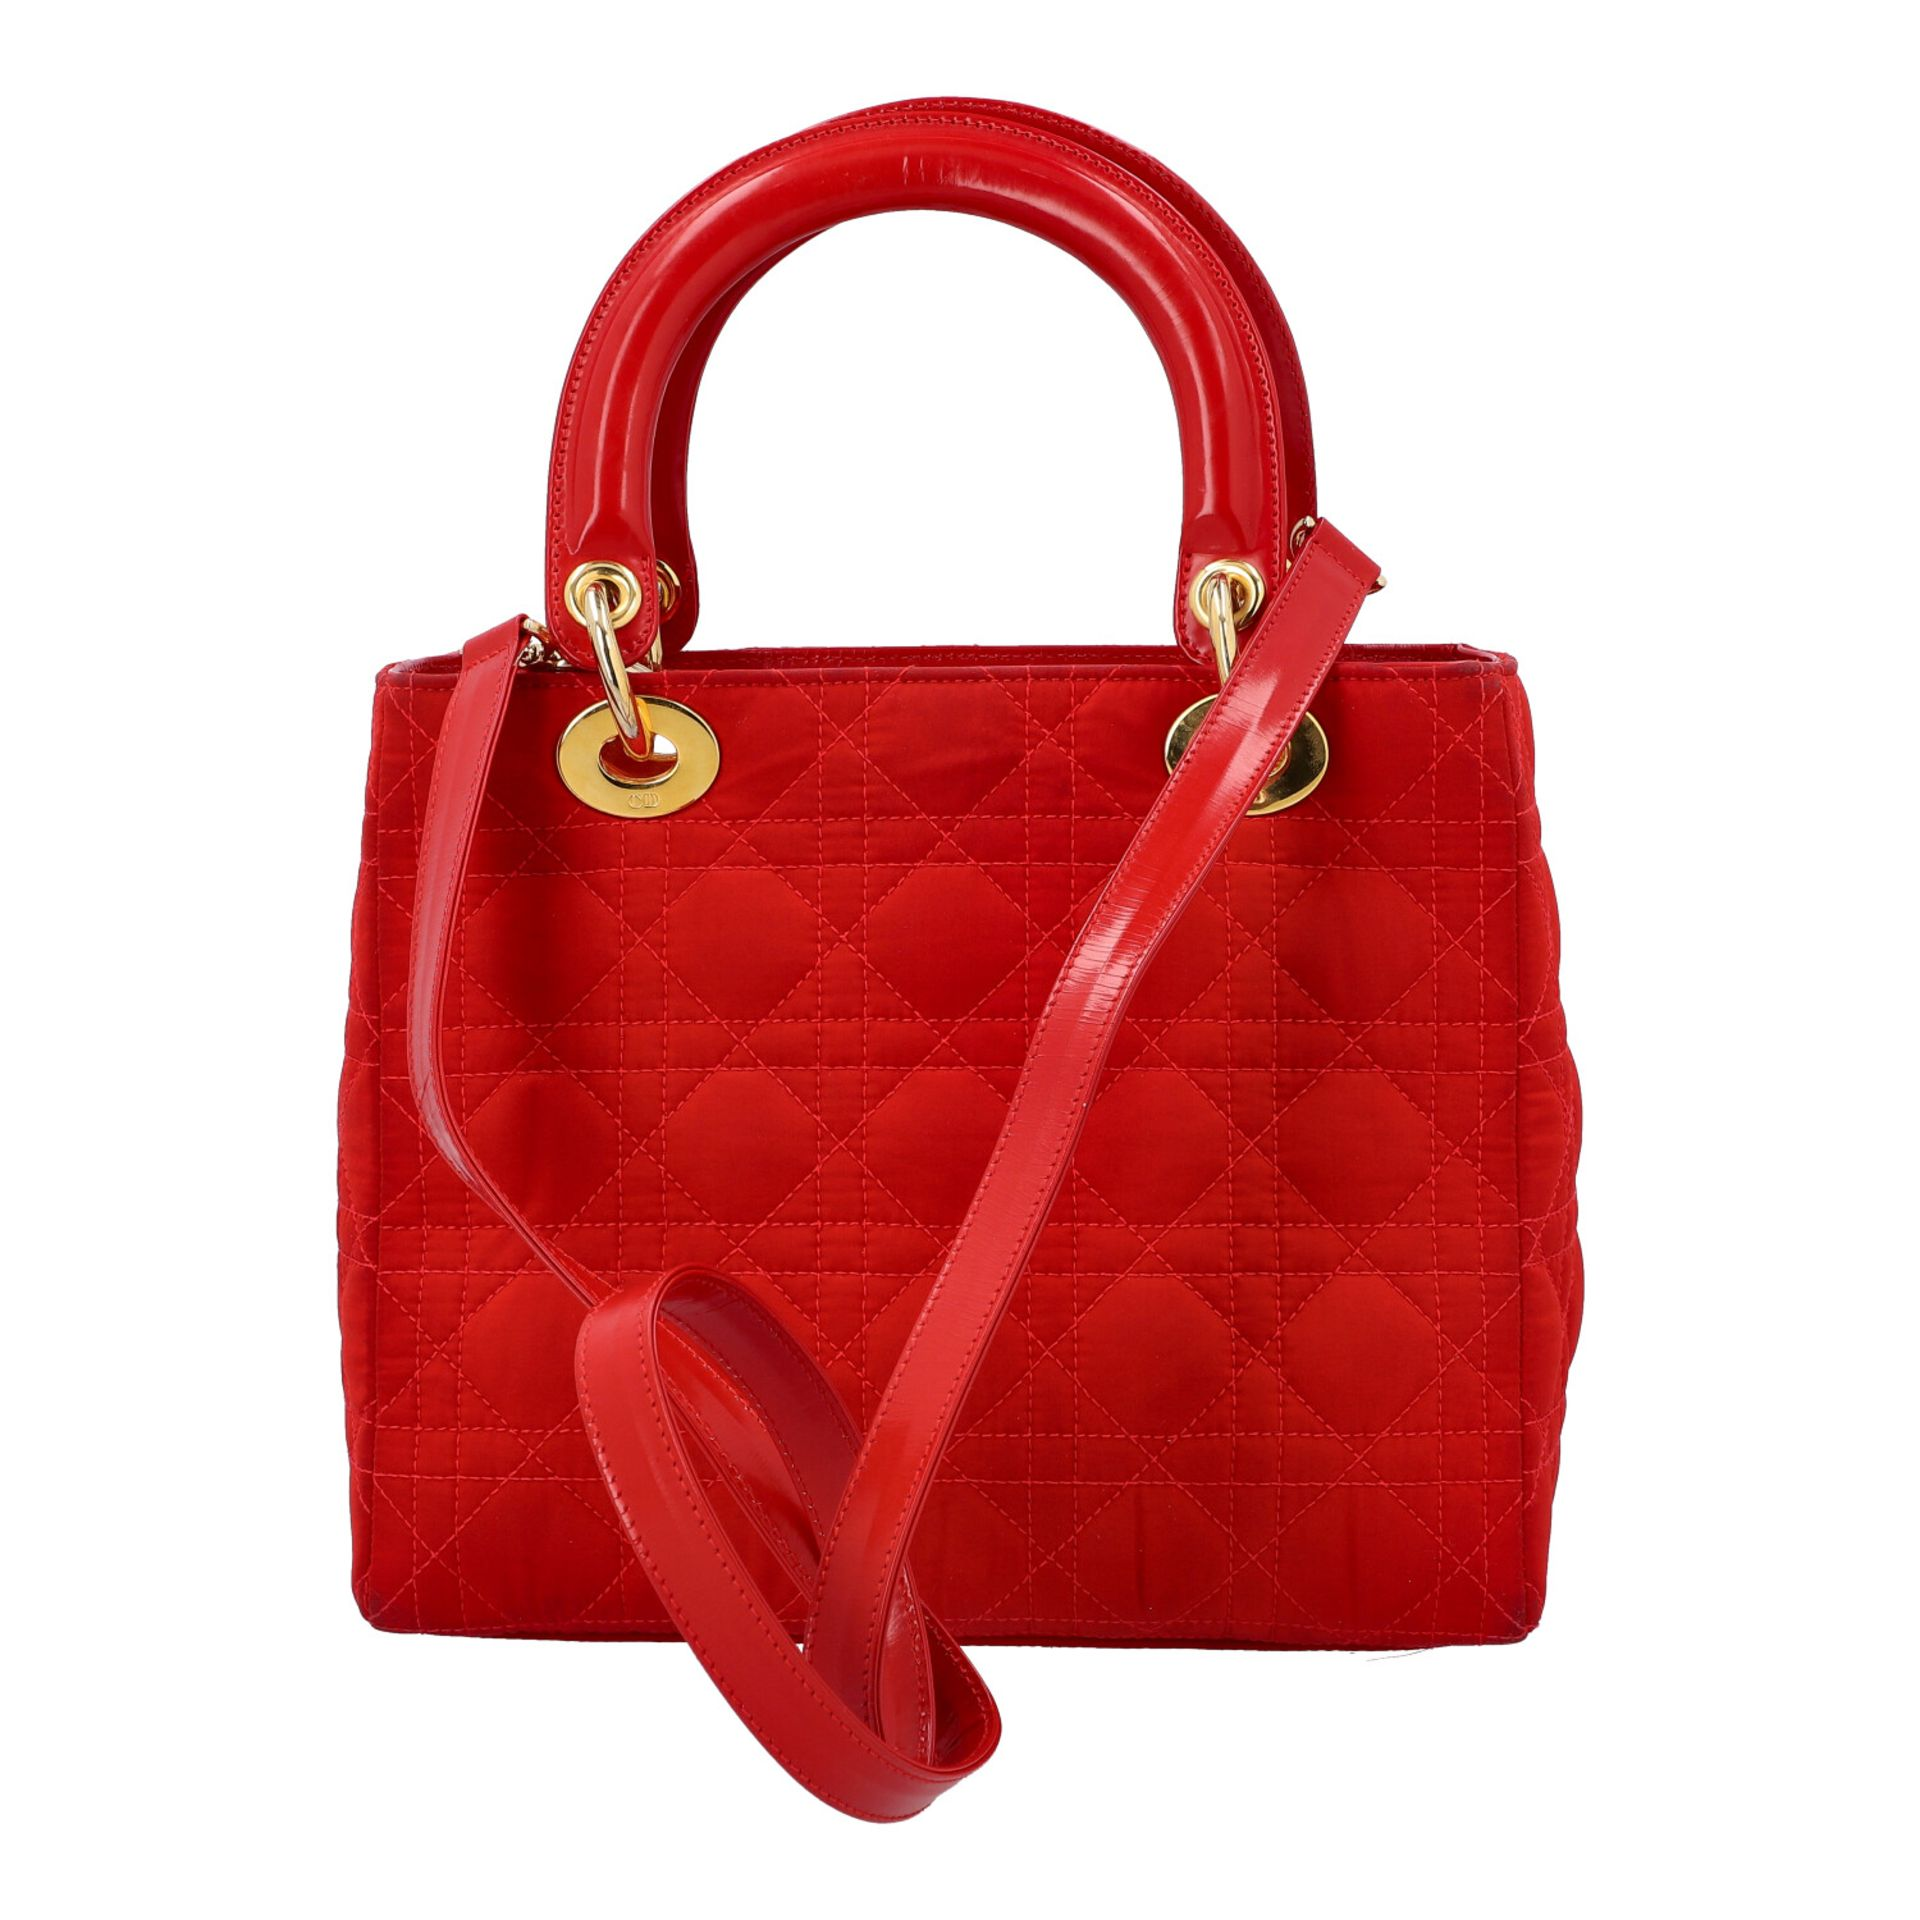 """CHRISTIAN DIOR Henkeltasche """"LADY DIOR"""", Koll.: 1997. Textil in Rot mit Cannage Steppu - Image 4 of 8"""